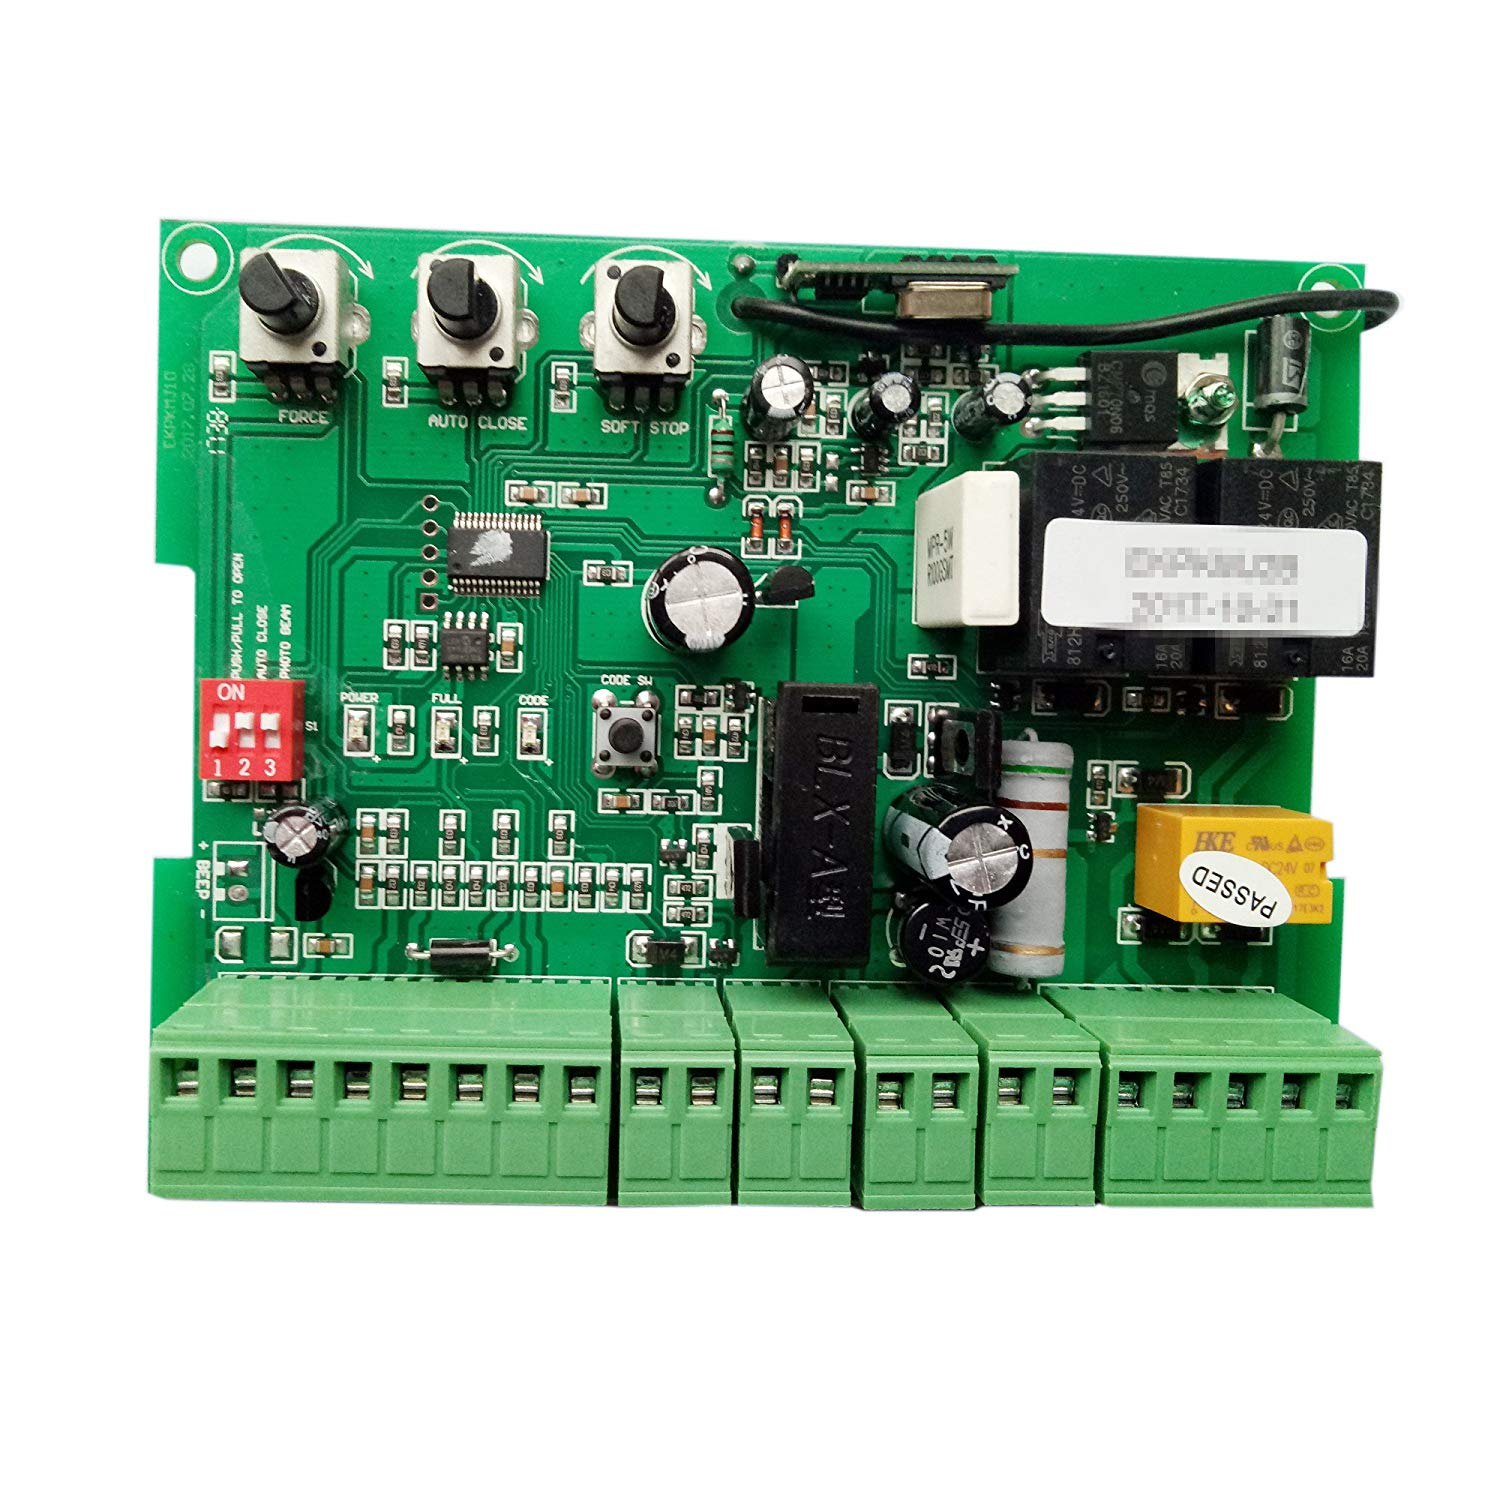 Cheap Auto Gate Openers Find Deals On Line At Controller Board Image Control Opener Circuit Panel Get Quotations Topens A3pcb Pcb Print For A3 Swing